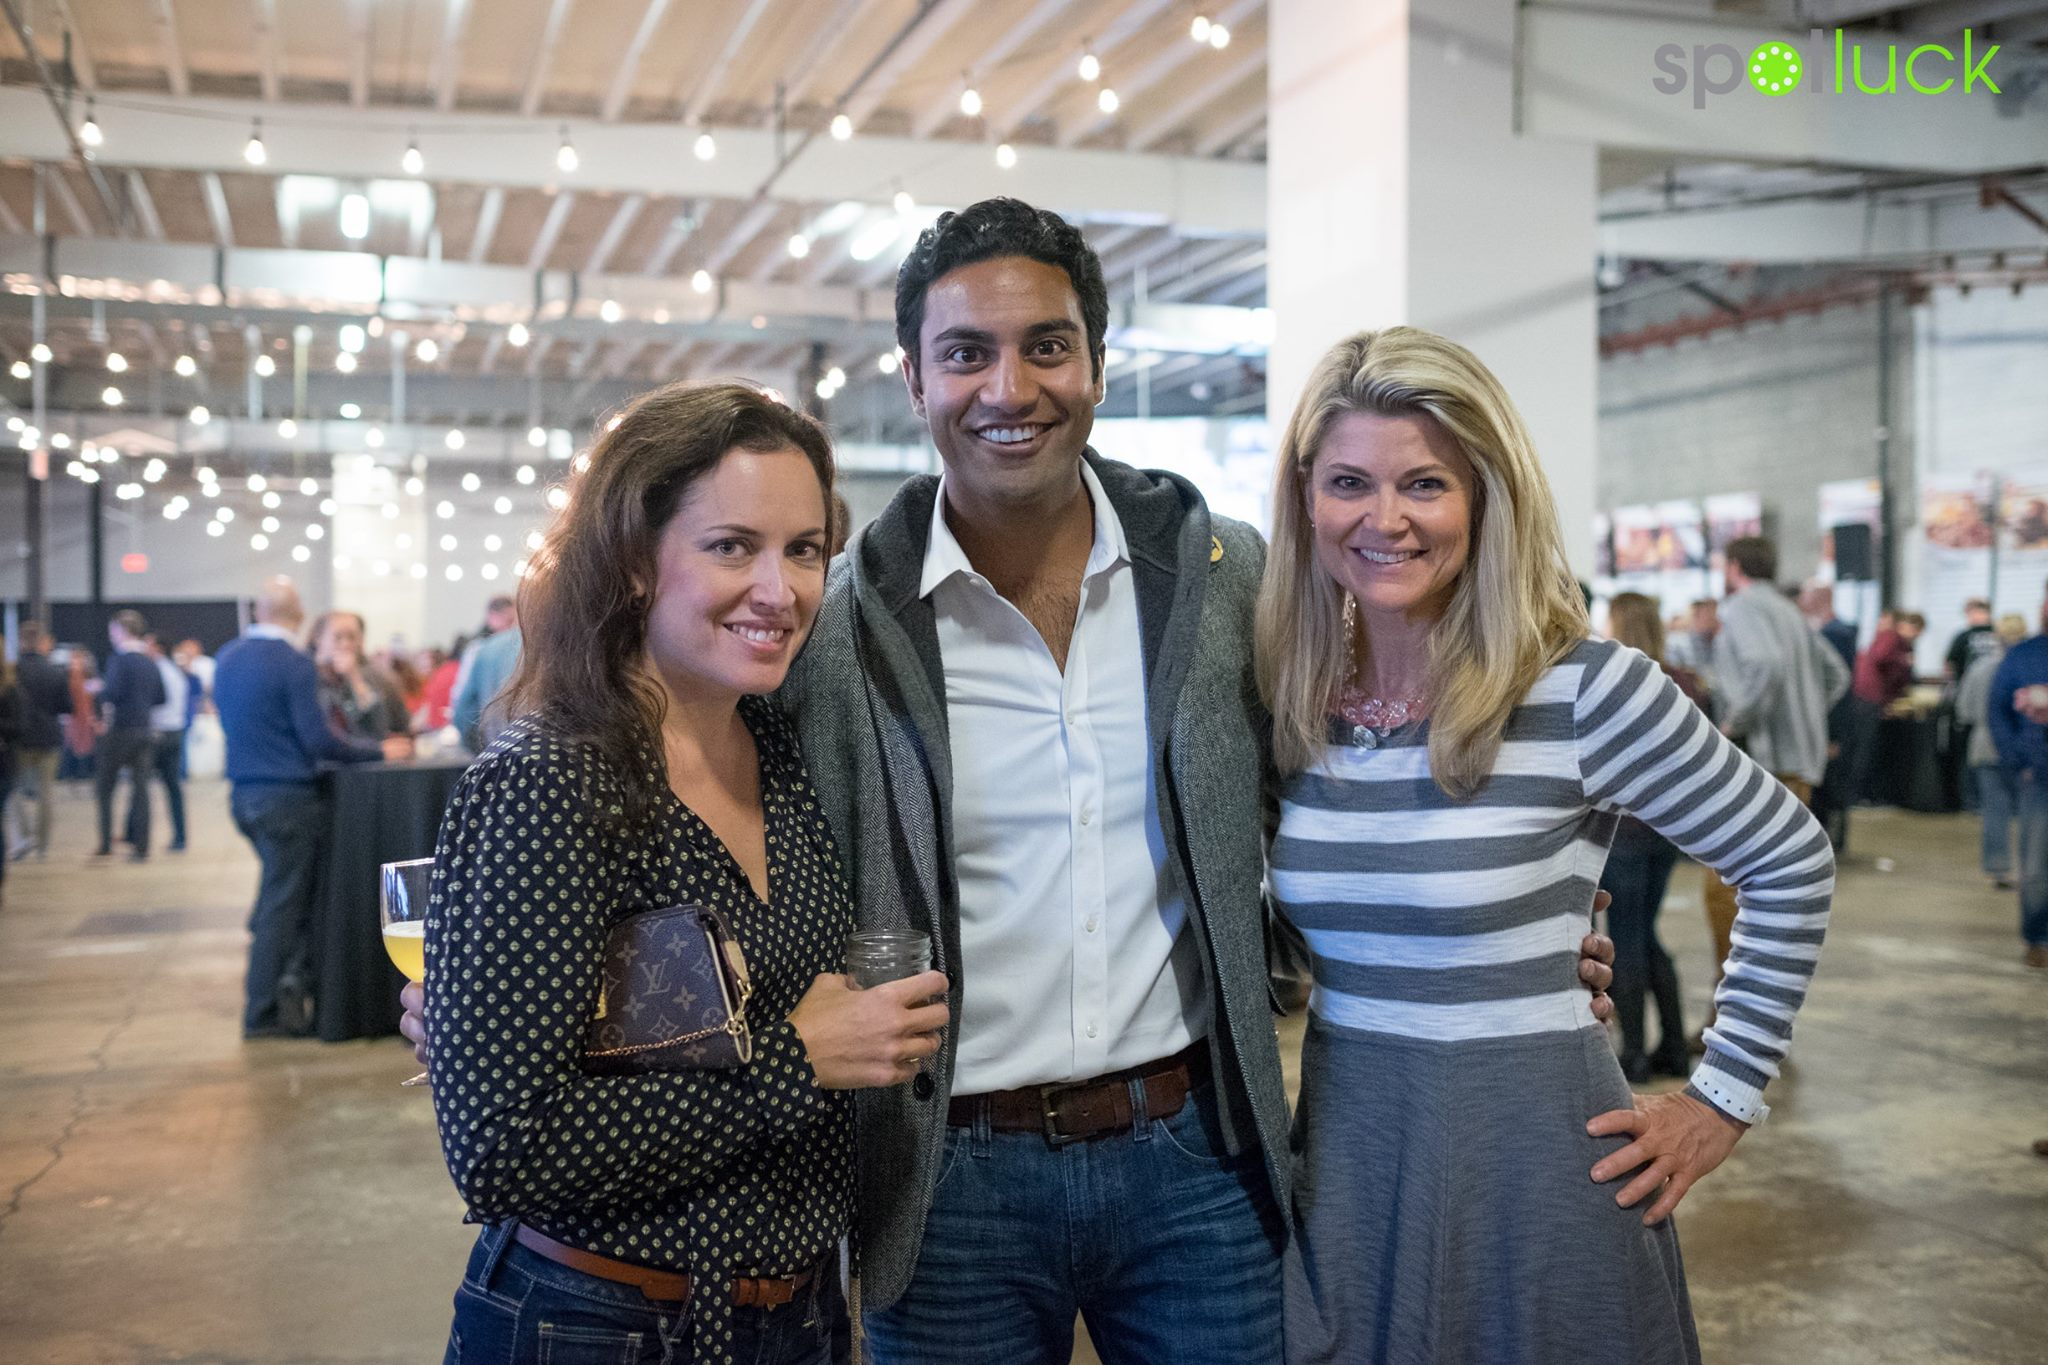 Spotluck's Cherian Thomas (center) with Ingrid Sanden (left) and WNEW's Kimberly Suiters (right) at Cochon555.